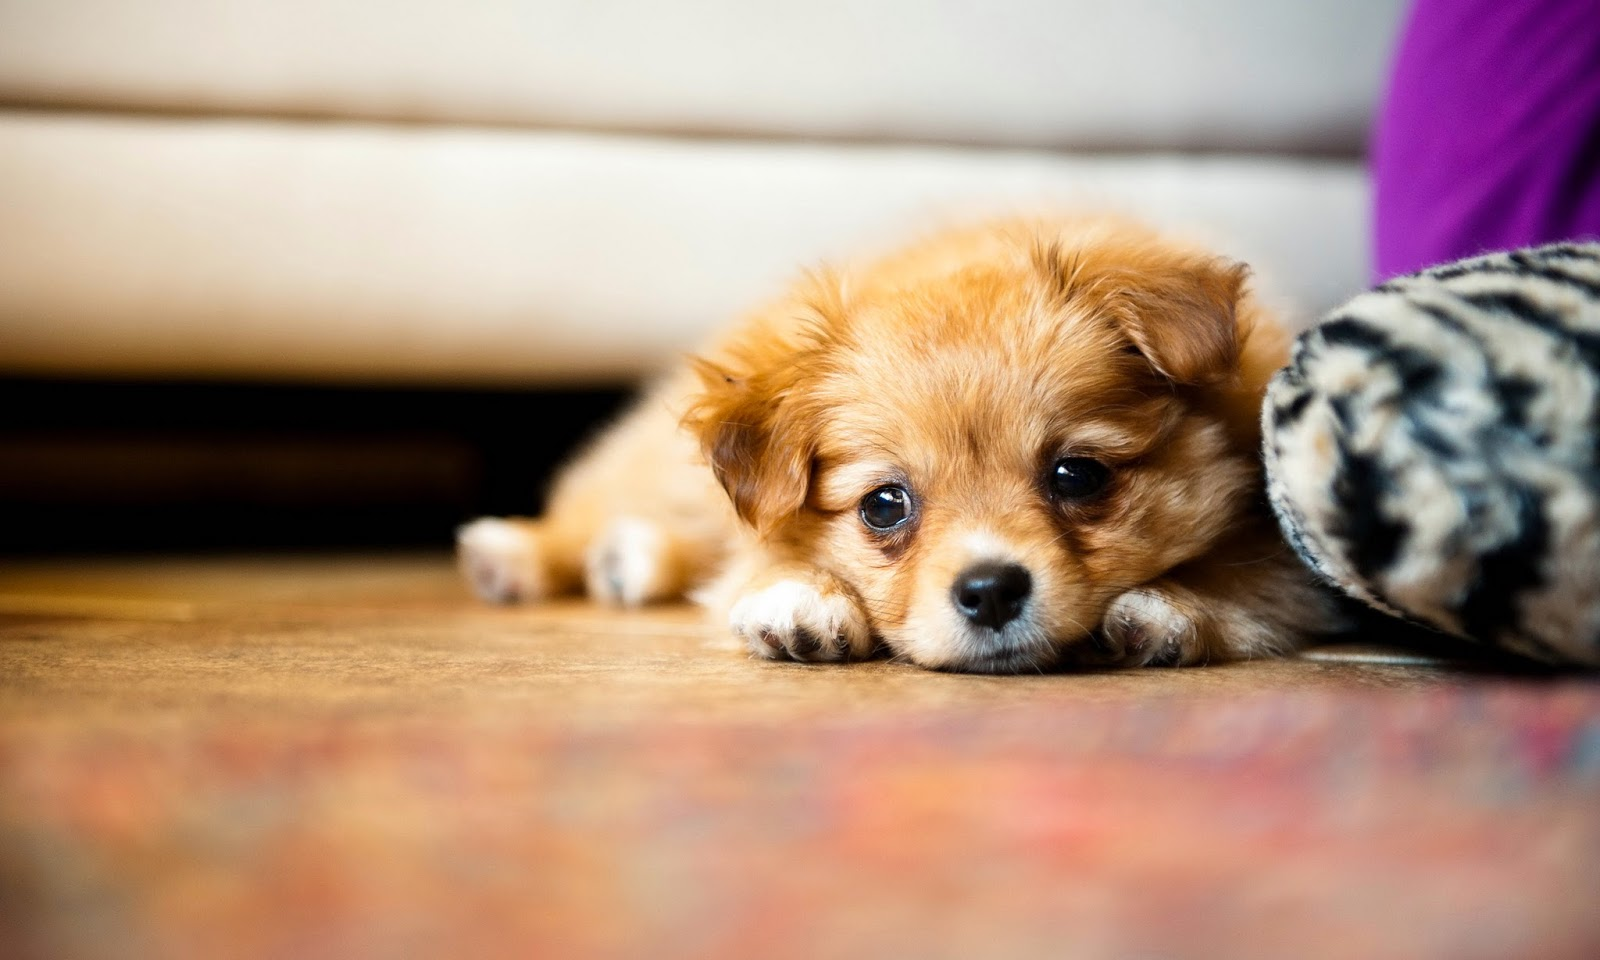 puppy dog wallpaper - photo #23